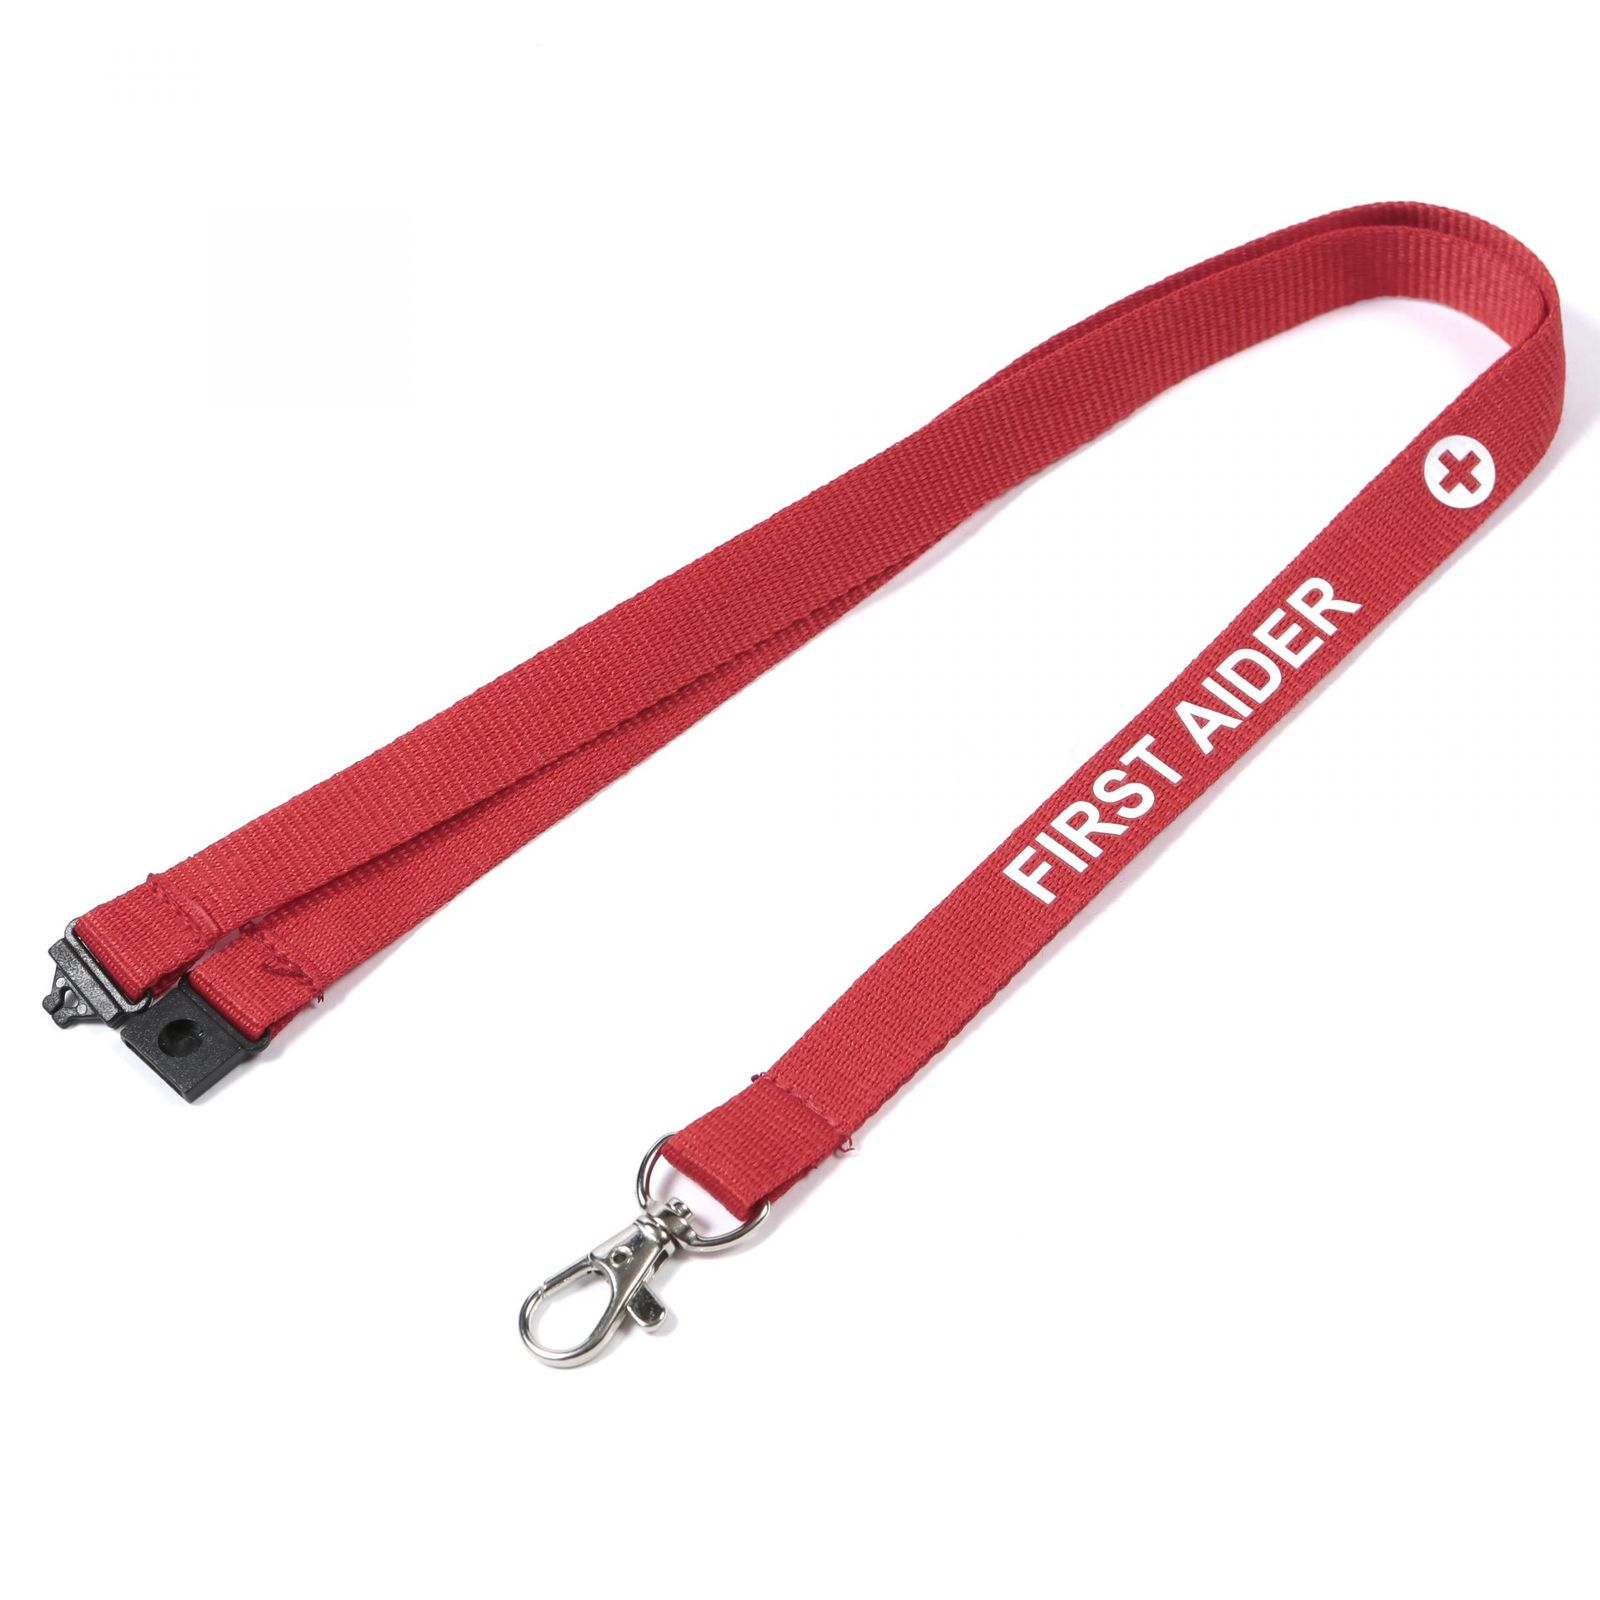 Buy Red First Aider on Lanyards Direct Today!